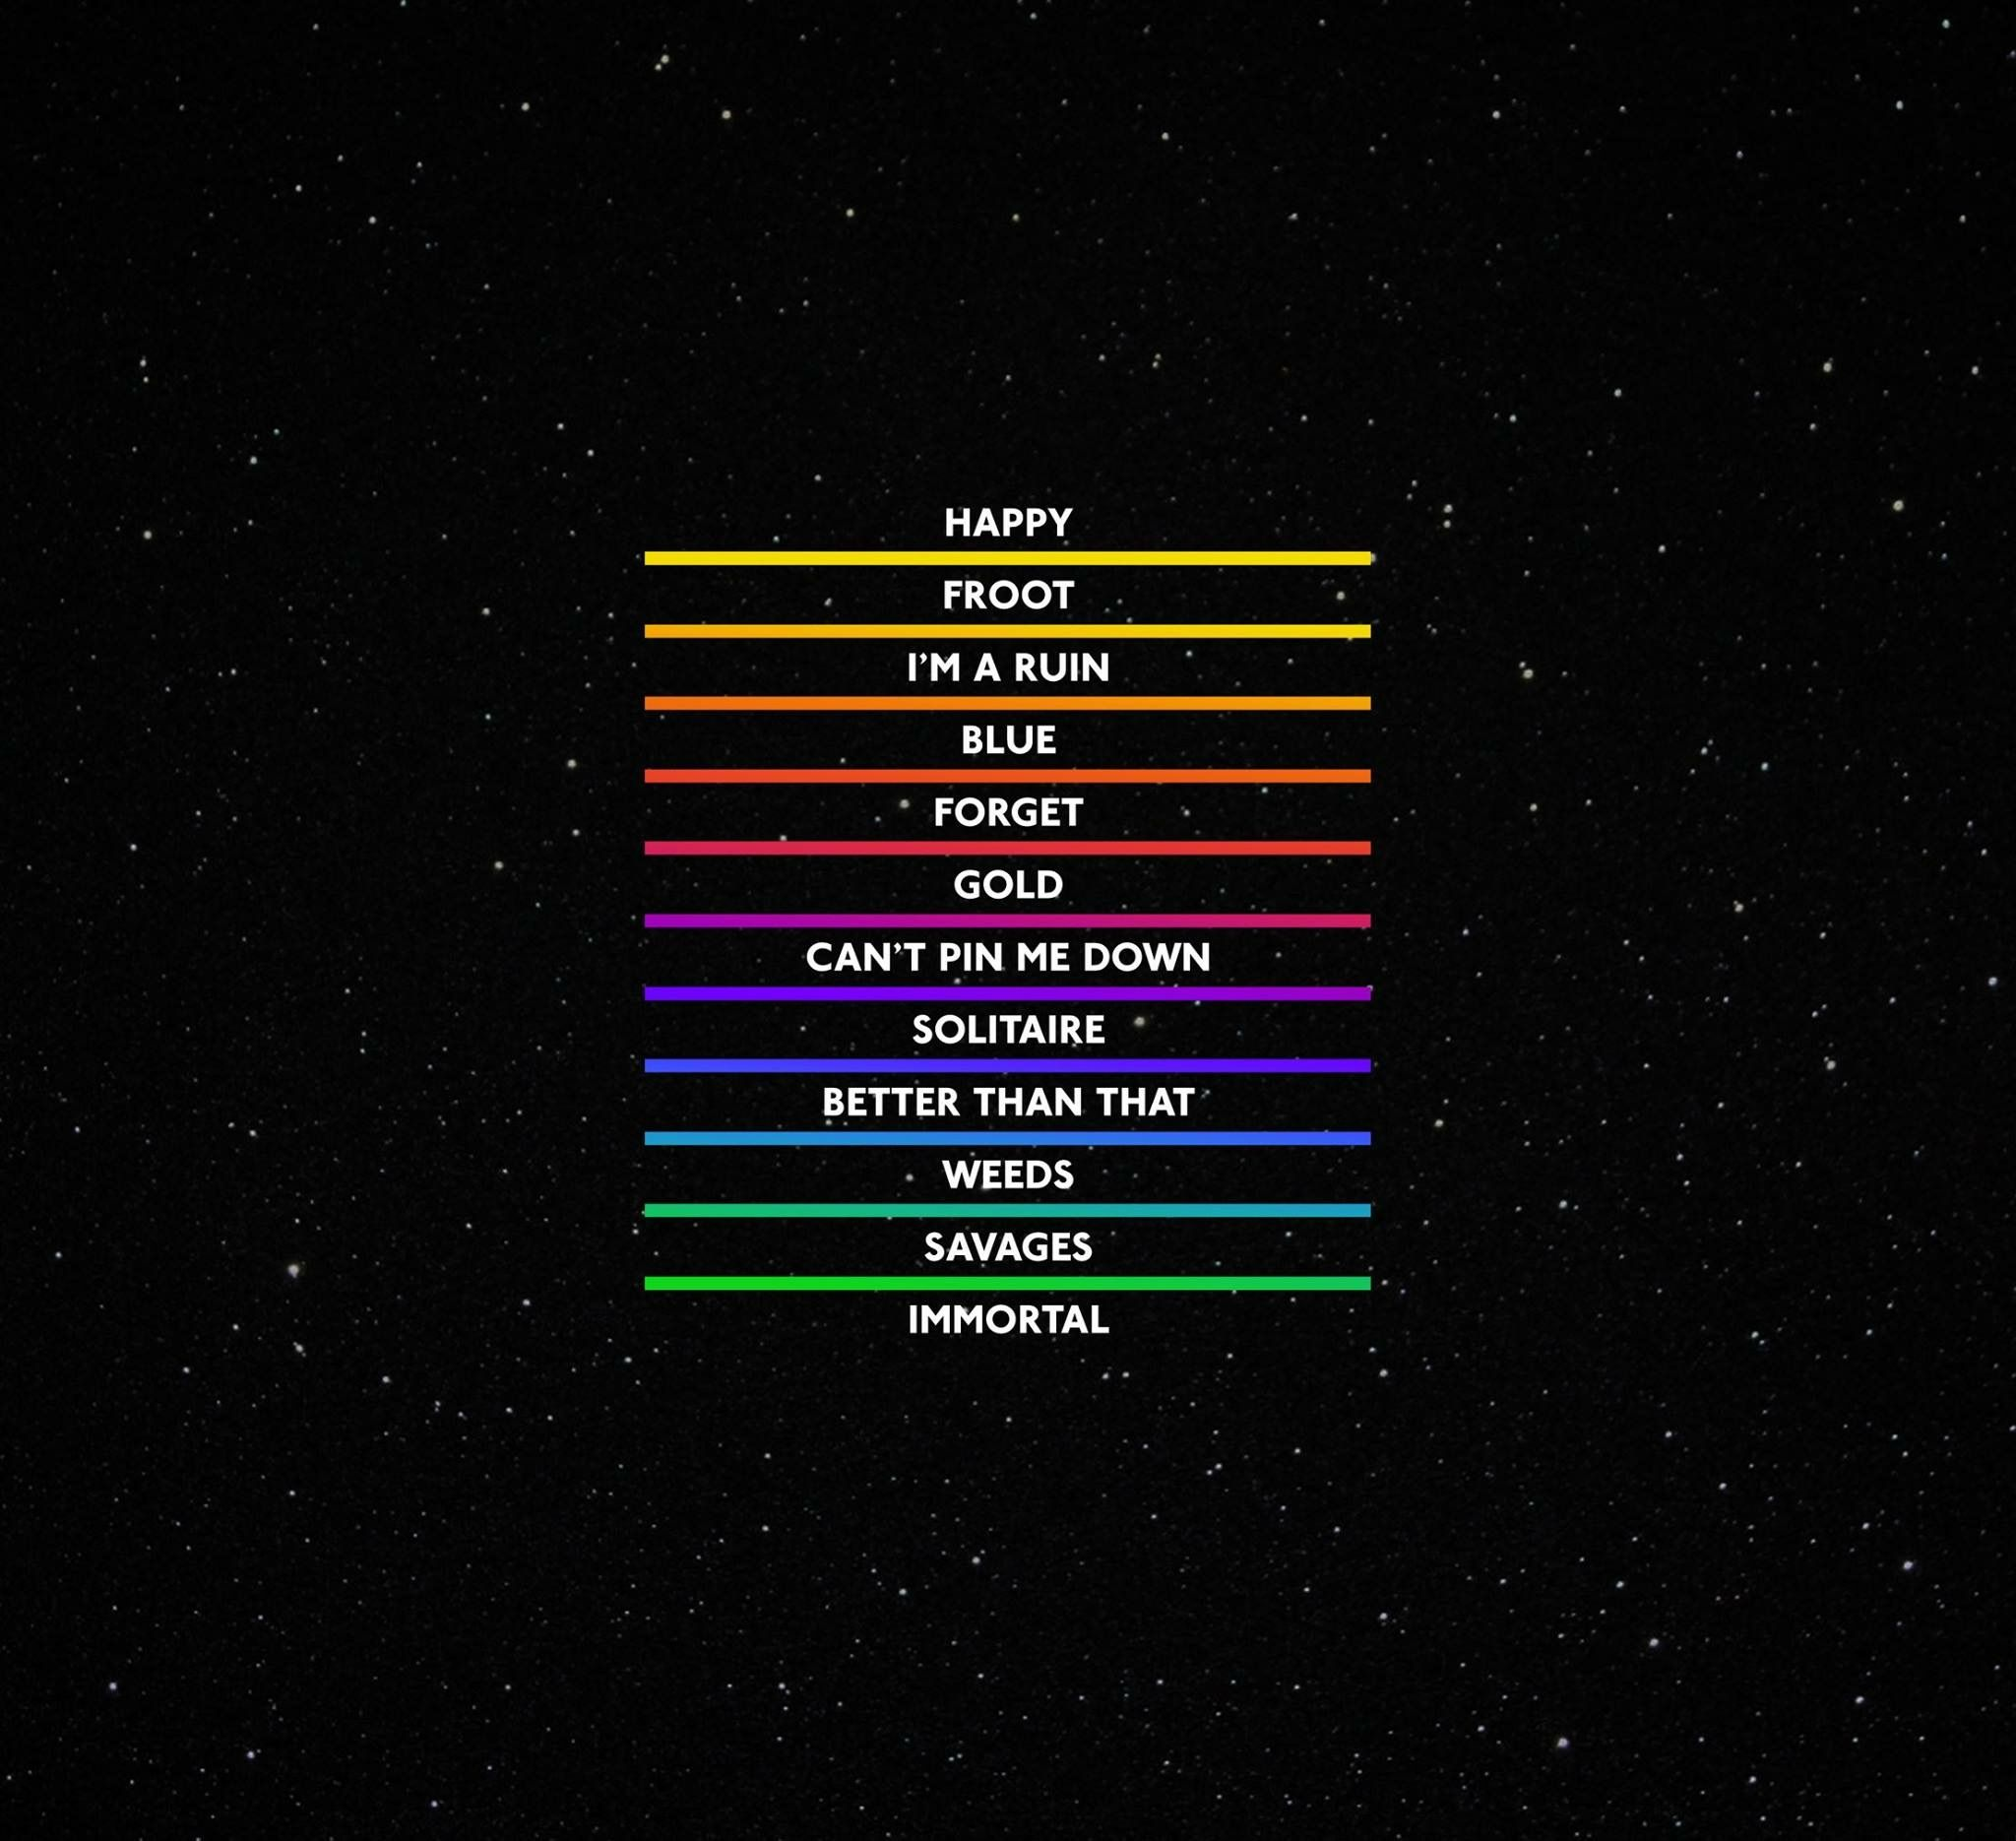 Marina And The Diamonds - Froot tracklist █  MARINA AND THE DIAMONDS ▮on▮ Facebook